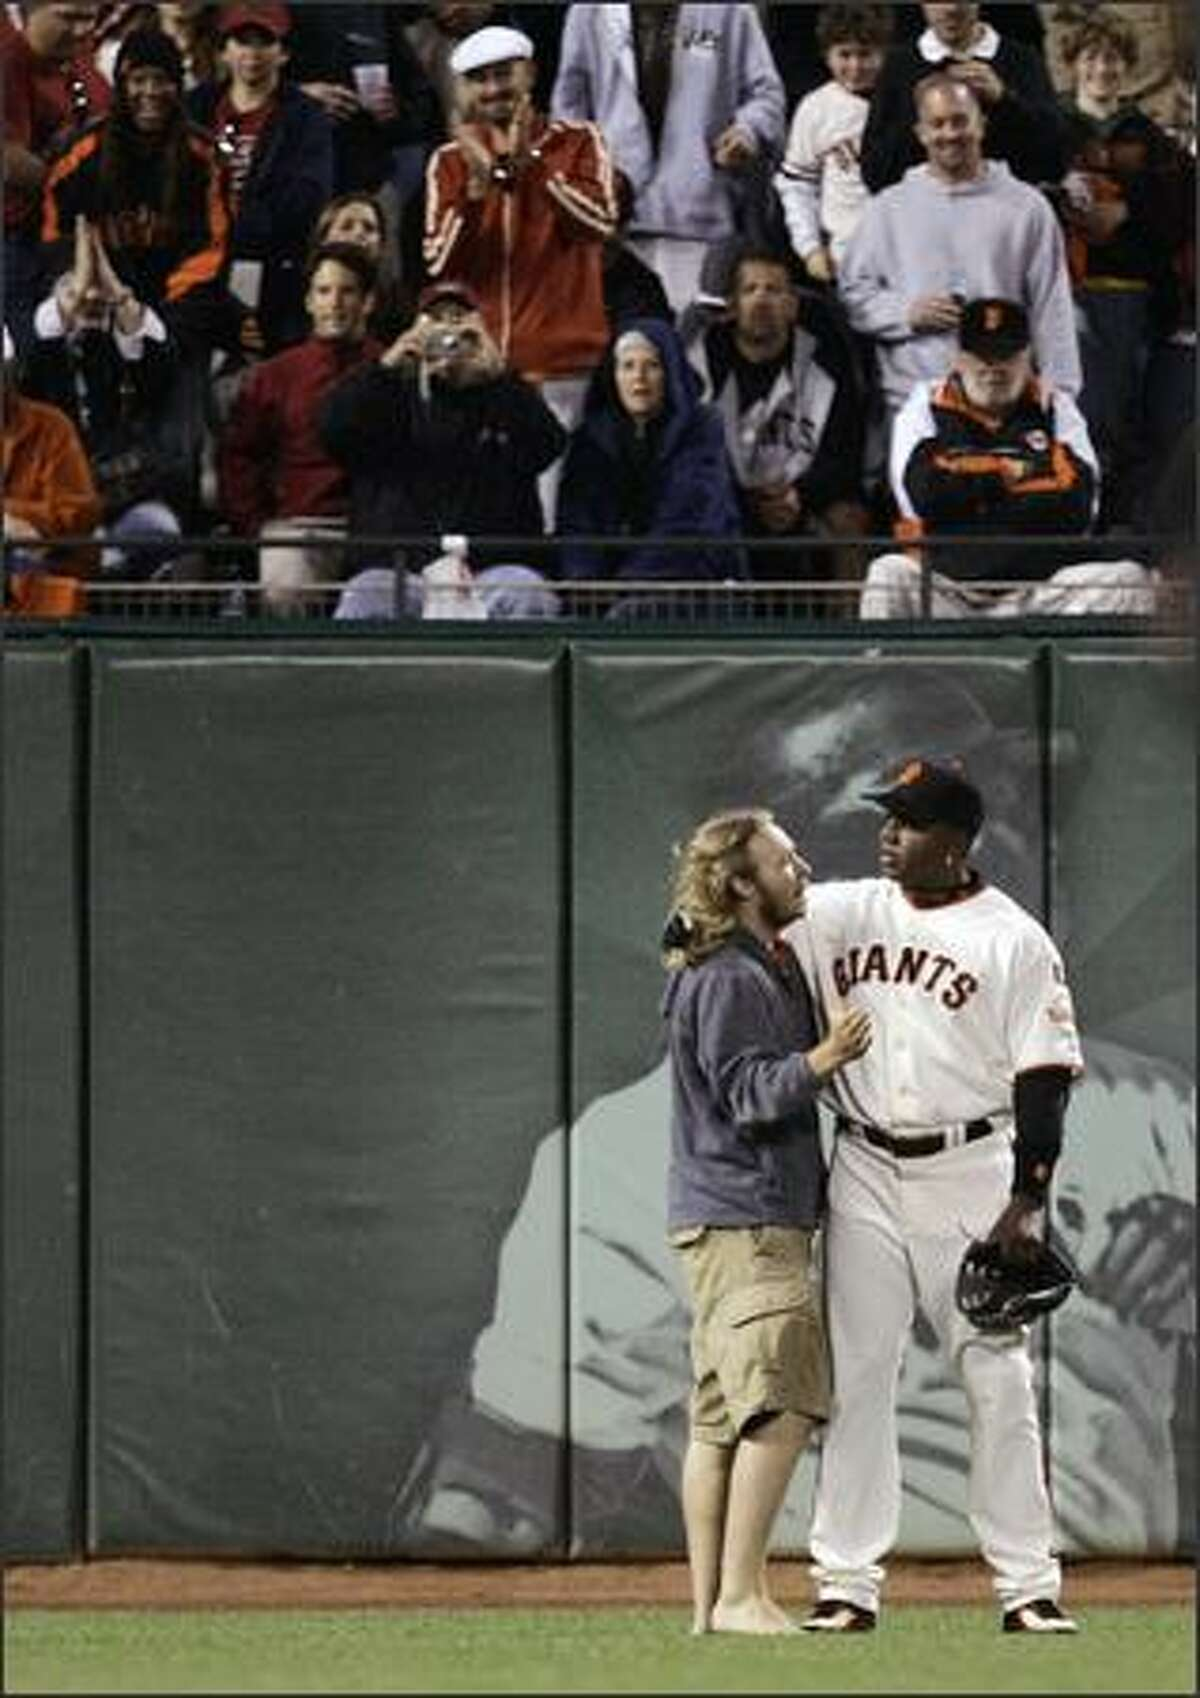 San Francisco Giants' Barry Bonds, right, puts his arm around a fan that walked out to greet him in left field during the seventh inning of a baseball game against the Arizona Diamondbacks, Friday, June 29, 2007, in San Francisco. (AP Photo/Ben Margot)